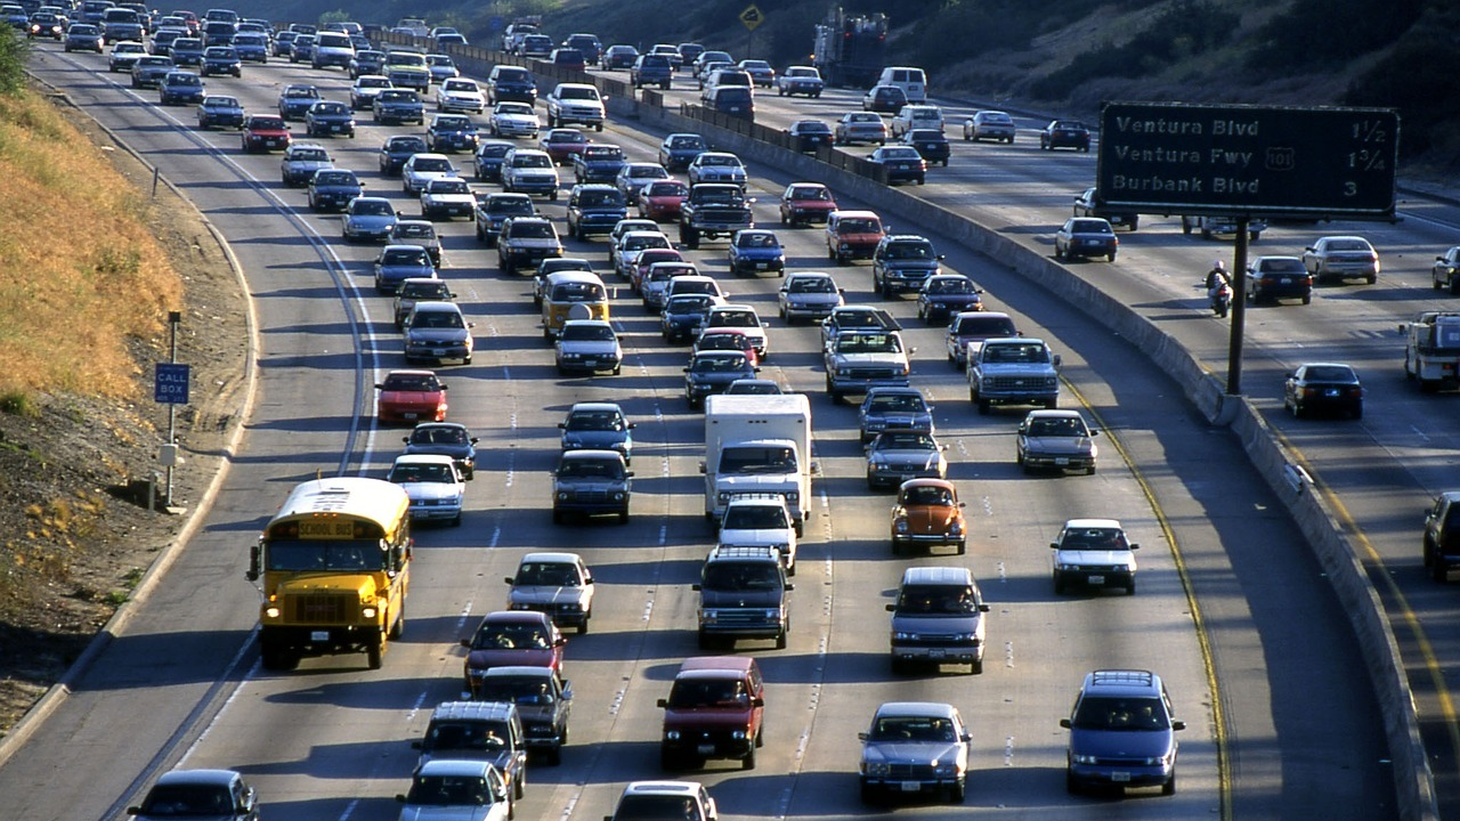 No one likes being stuck in traffic. So Metro is trying to find carrot-and-stick approaches to convince Angelenos to find alternatives to driving.